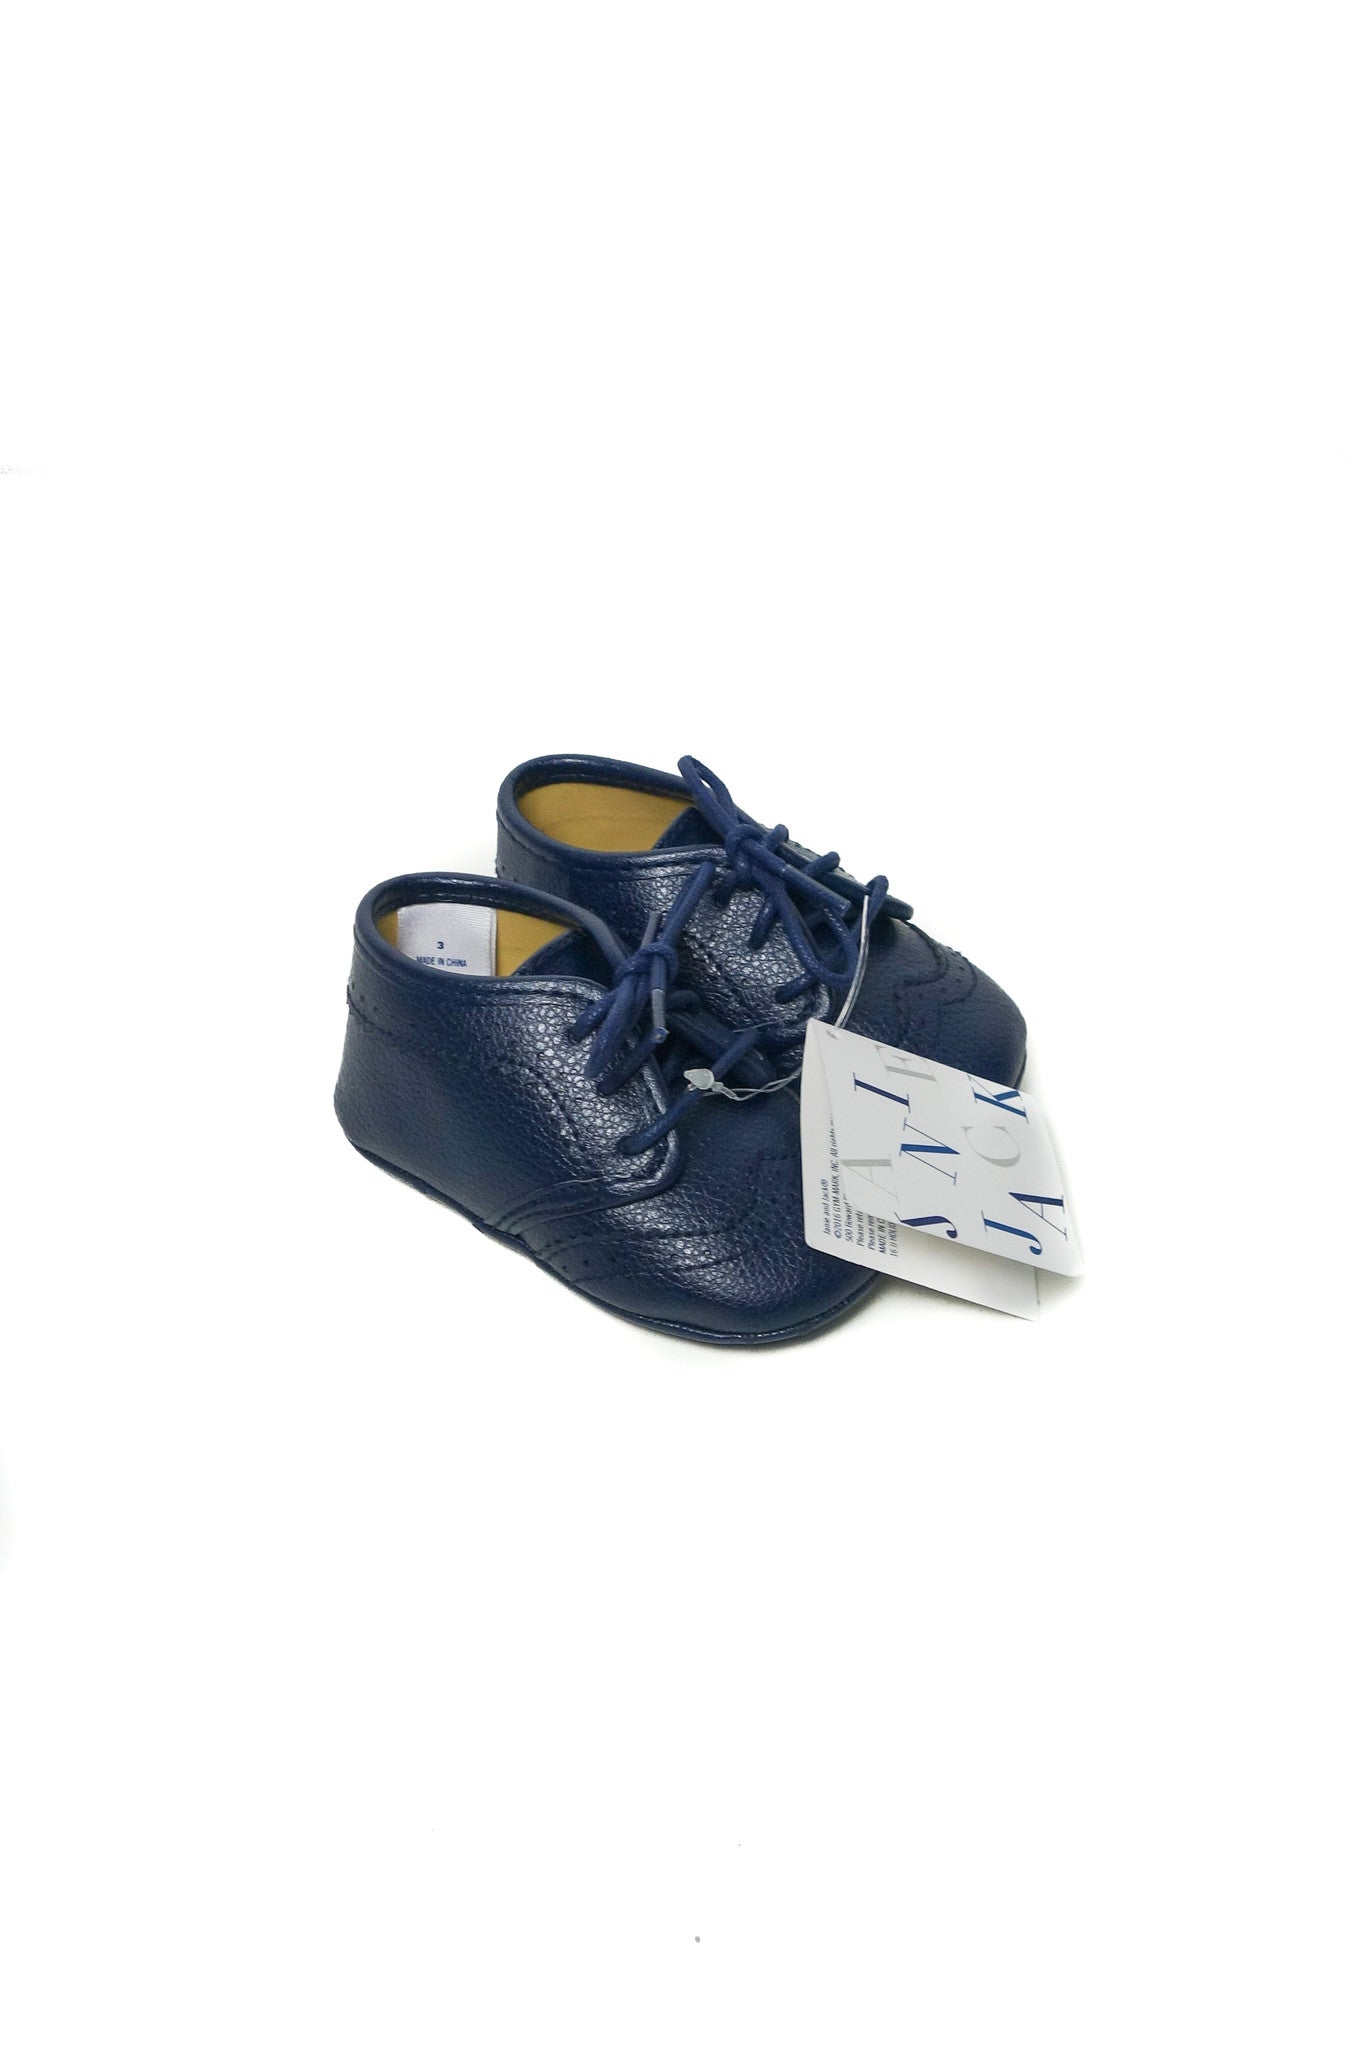 10003056 Janie & Jack Baby~Shoes 3M at Retykle